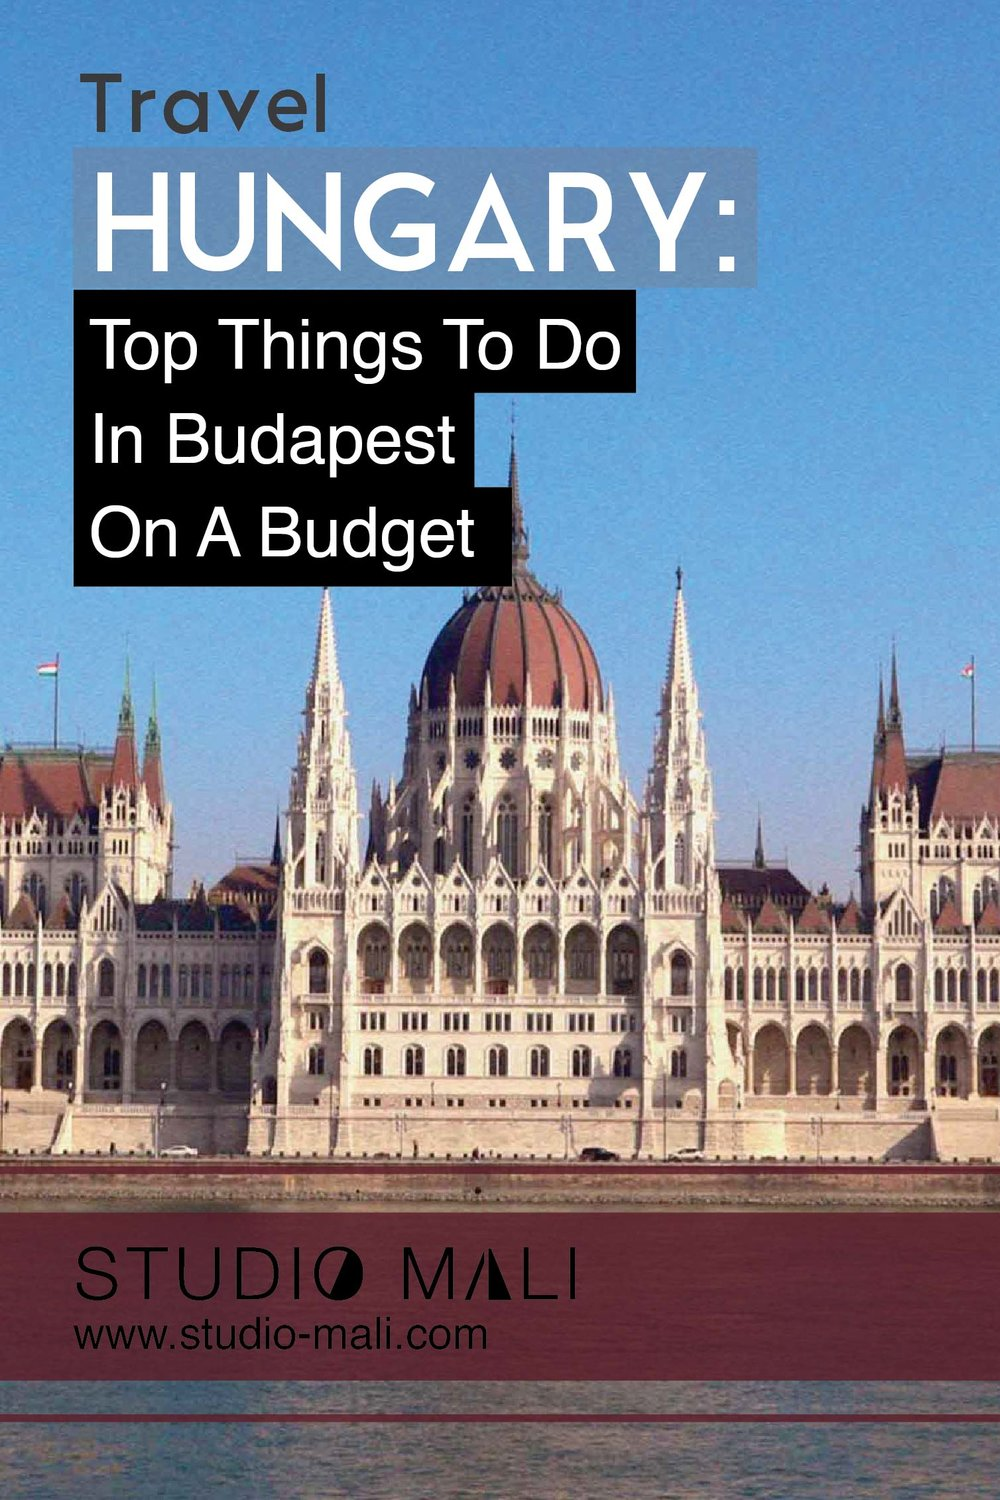 Top Things To Do In Budapest On A Budget, by Studio Mali